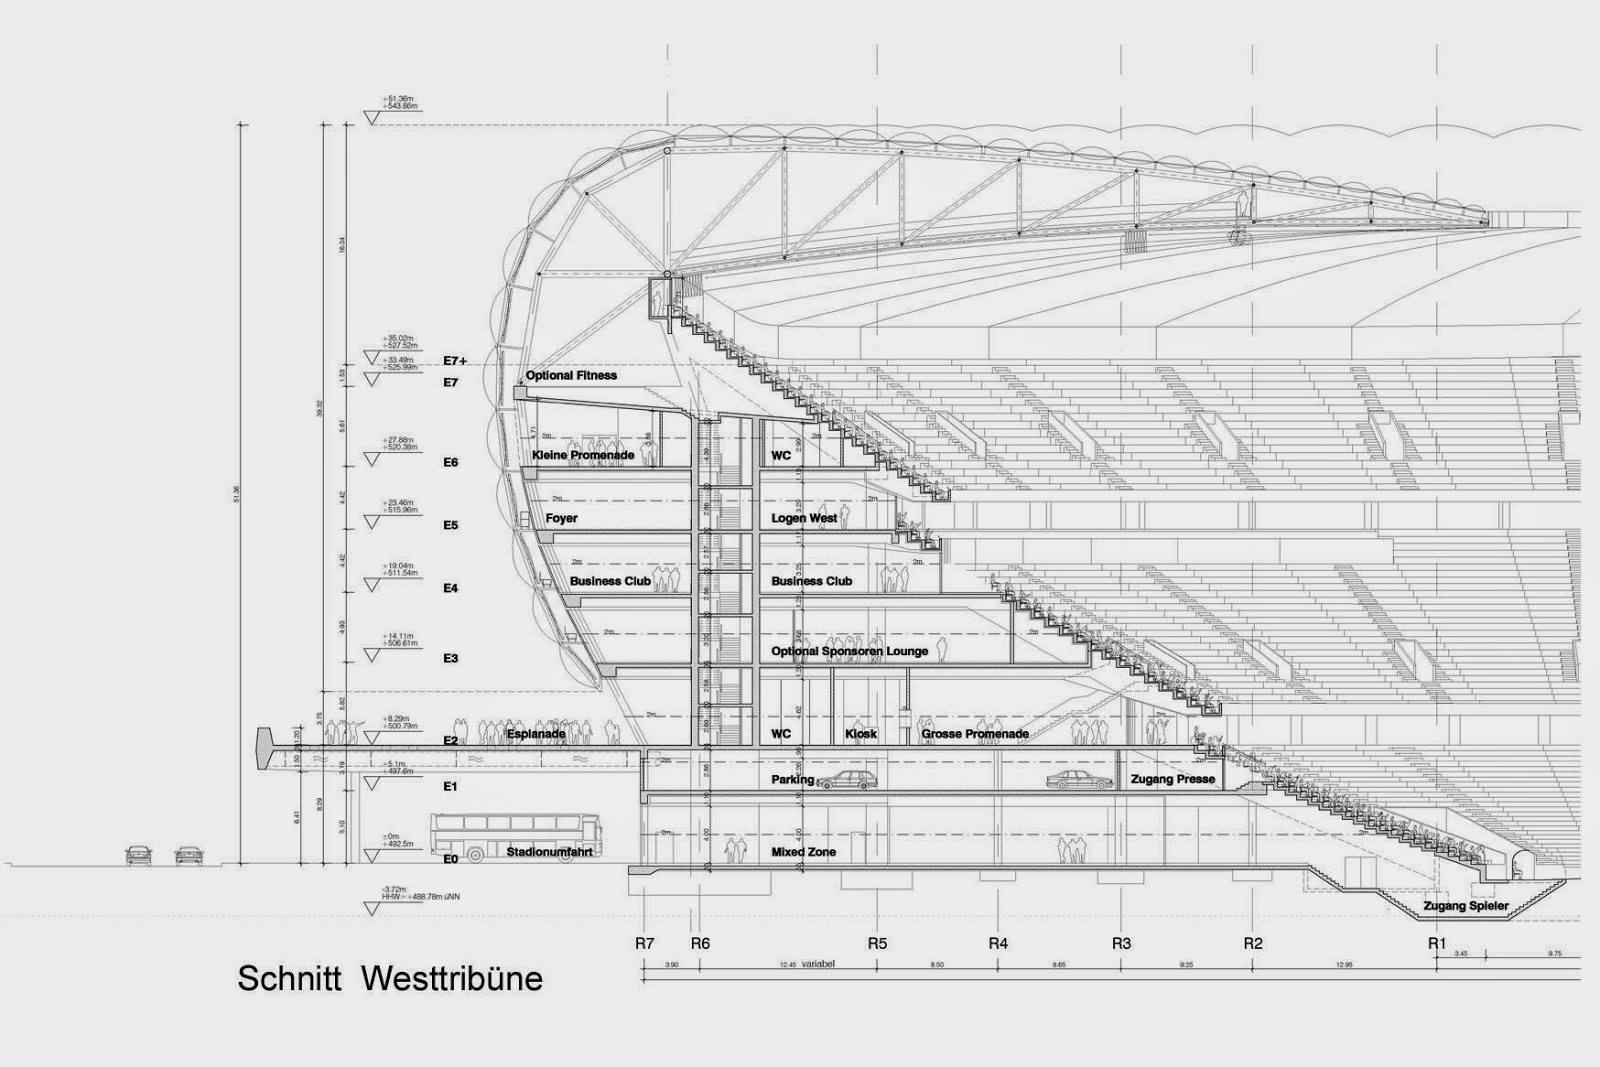 Allianz arena architectural drawings plans designs for Print architectural plans